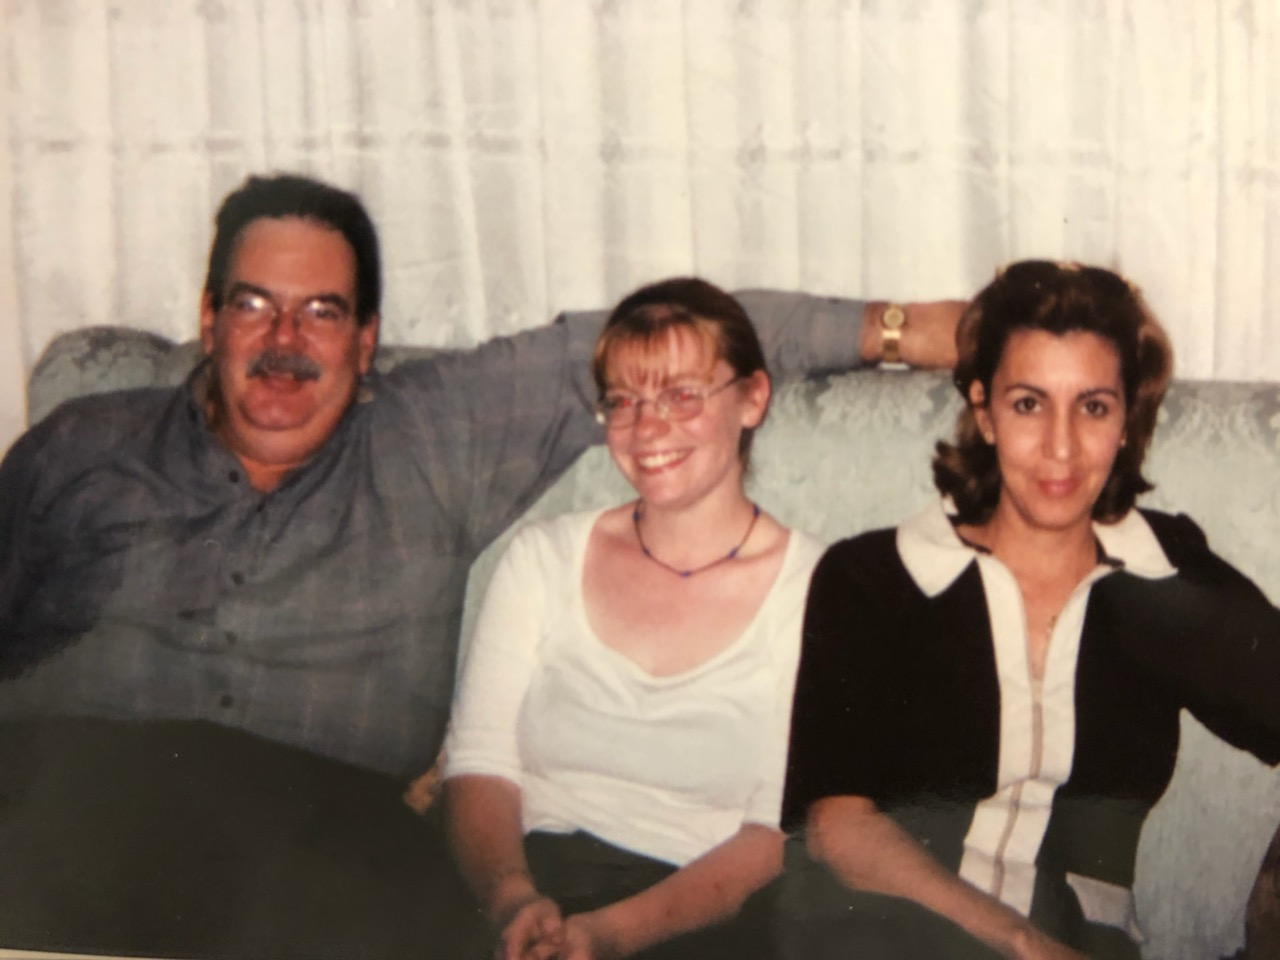 Kimberly with her host parents during her first trip abroad.